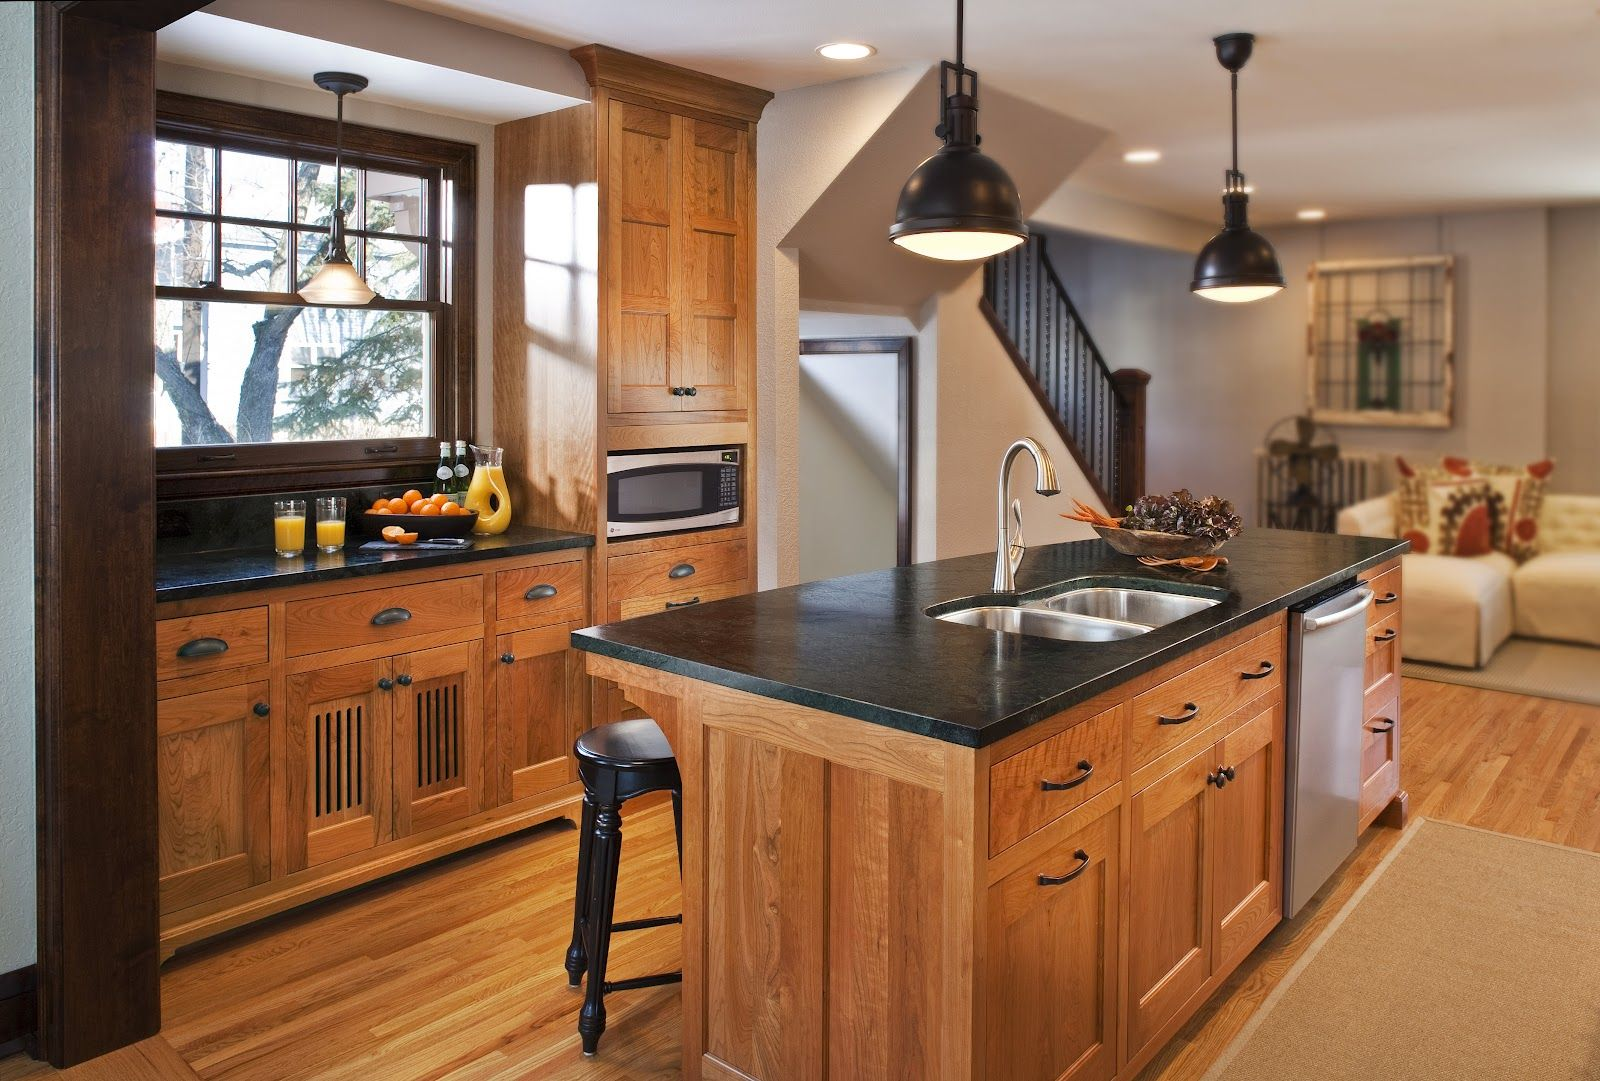 natural oak with soapstone counter tops